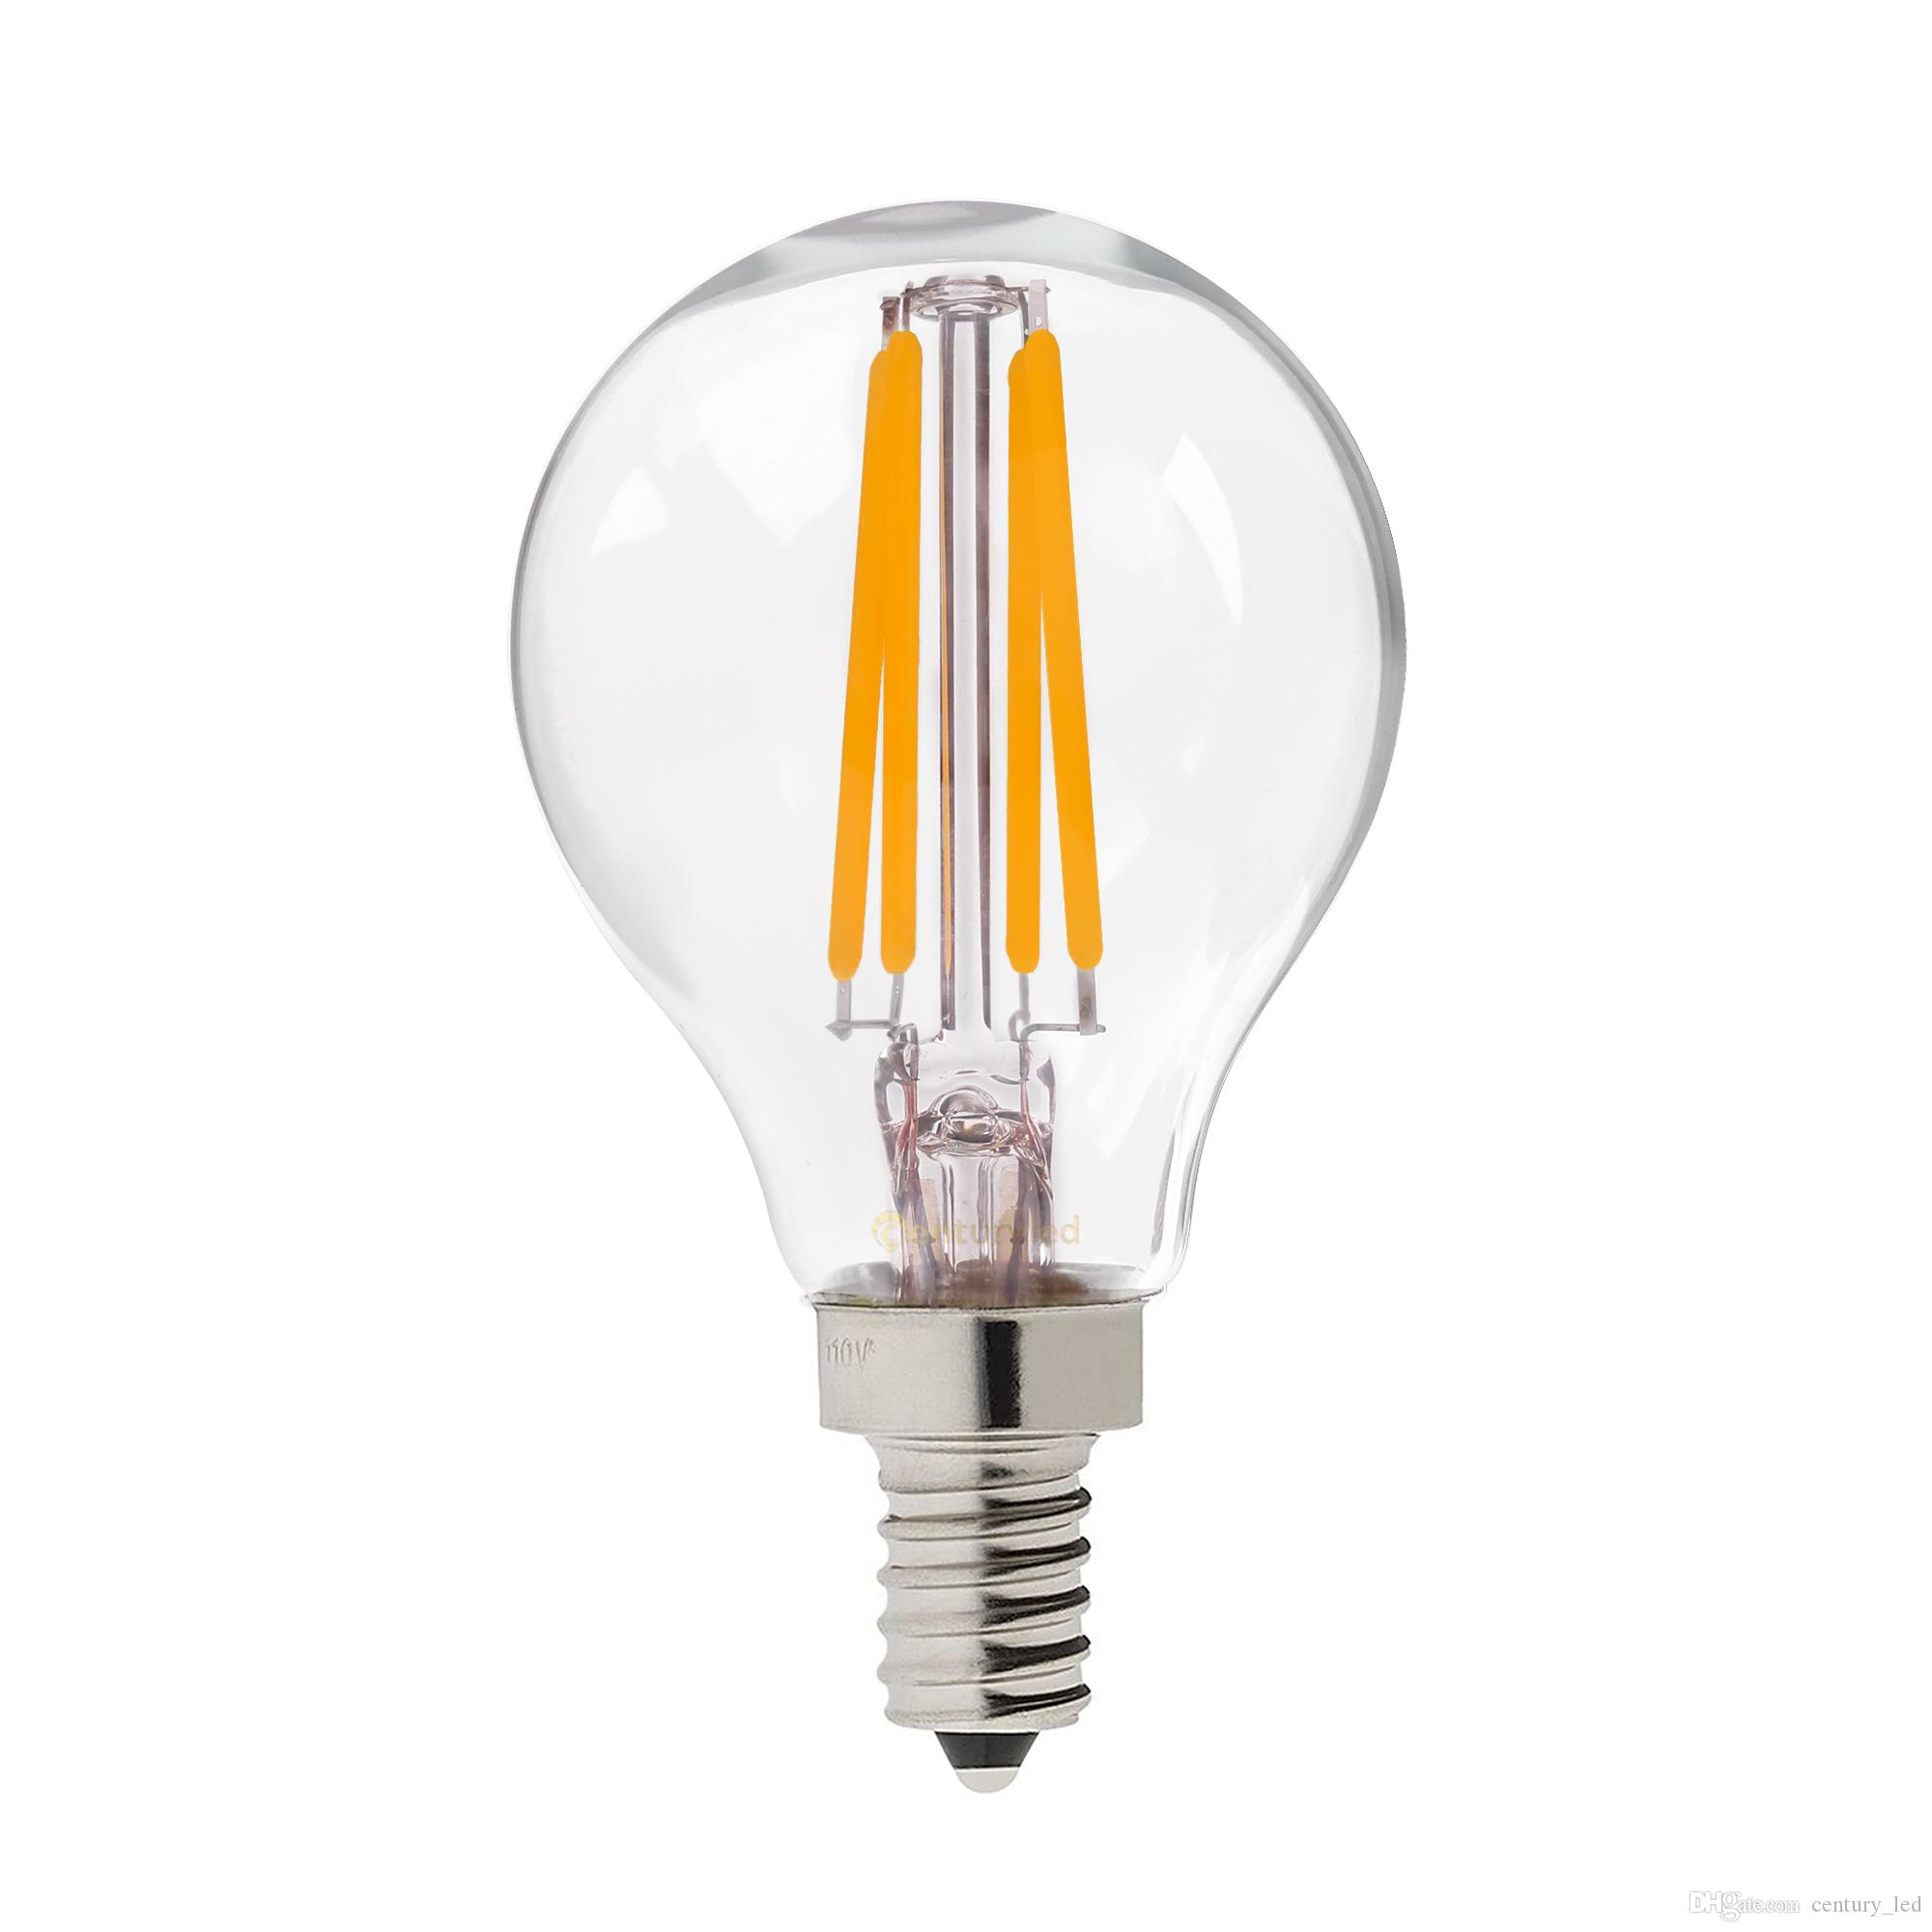 best retro led filament light bulb 4w e12 e14 base edison g45 clear style 110v 220vac dimmable. Black Bedroom Furniture Sets. Home Design Ideas